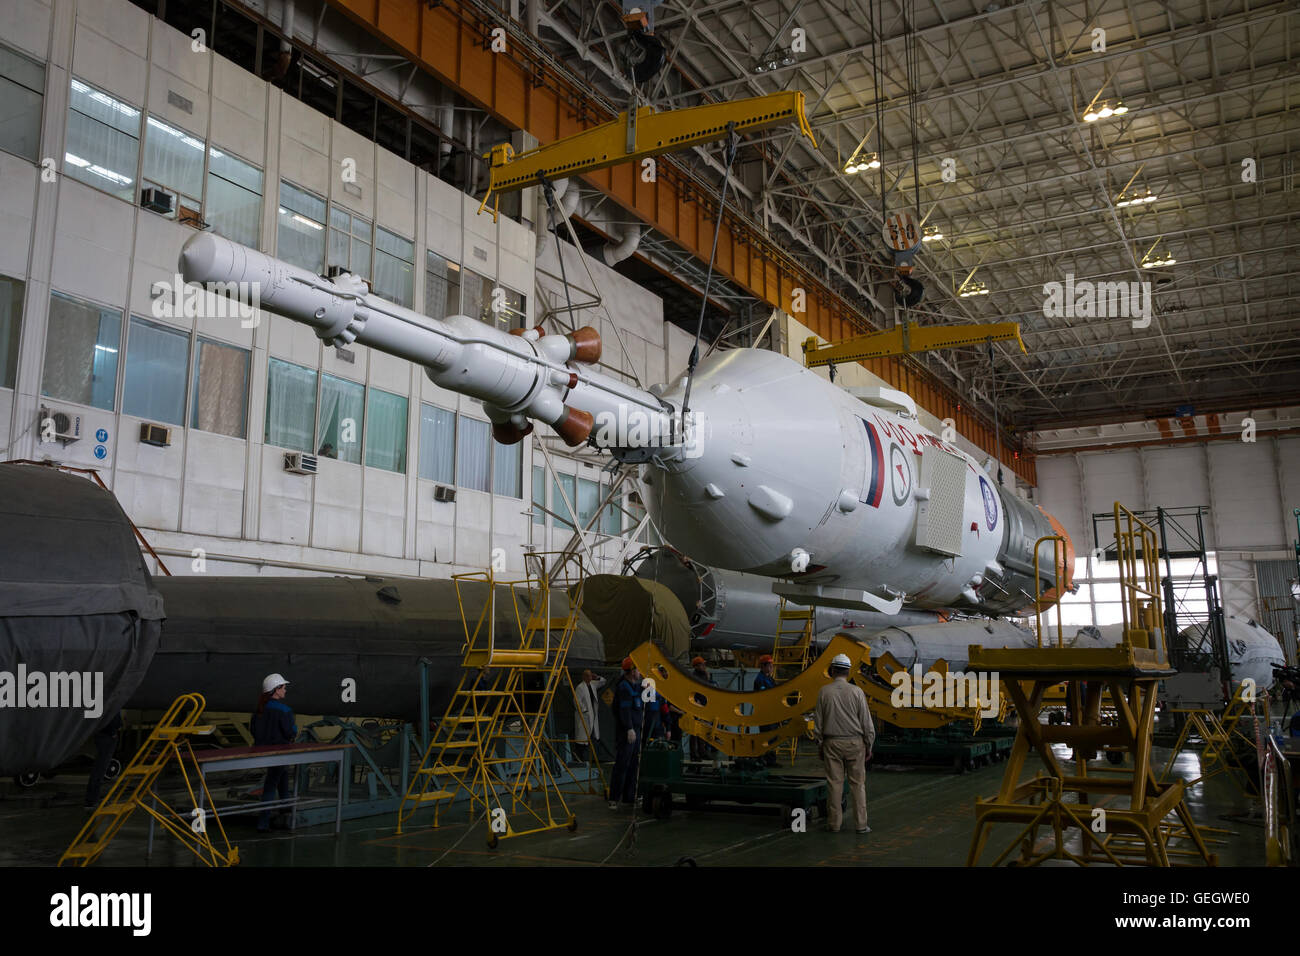 Expedition 47 Soyuz Final Assembly  03150003 - Stock Image